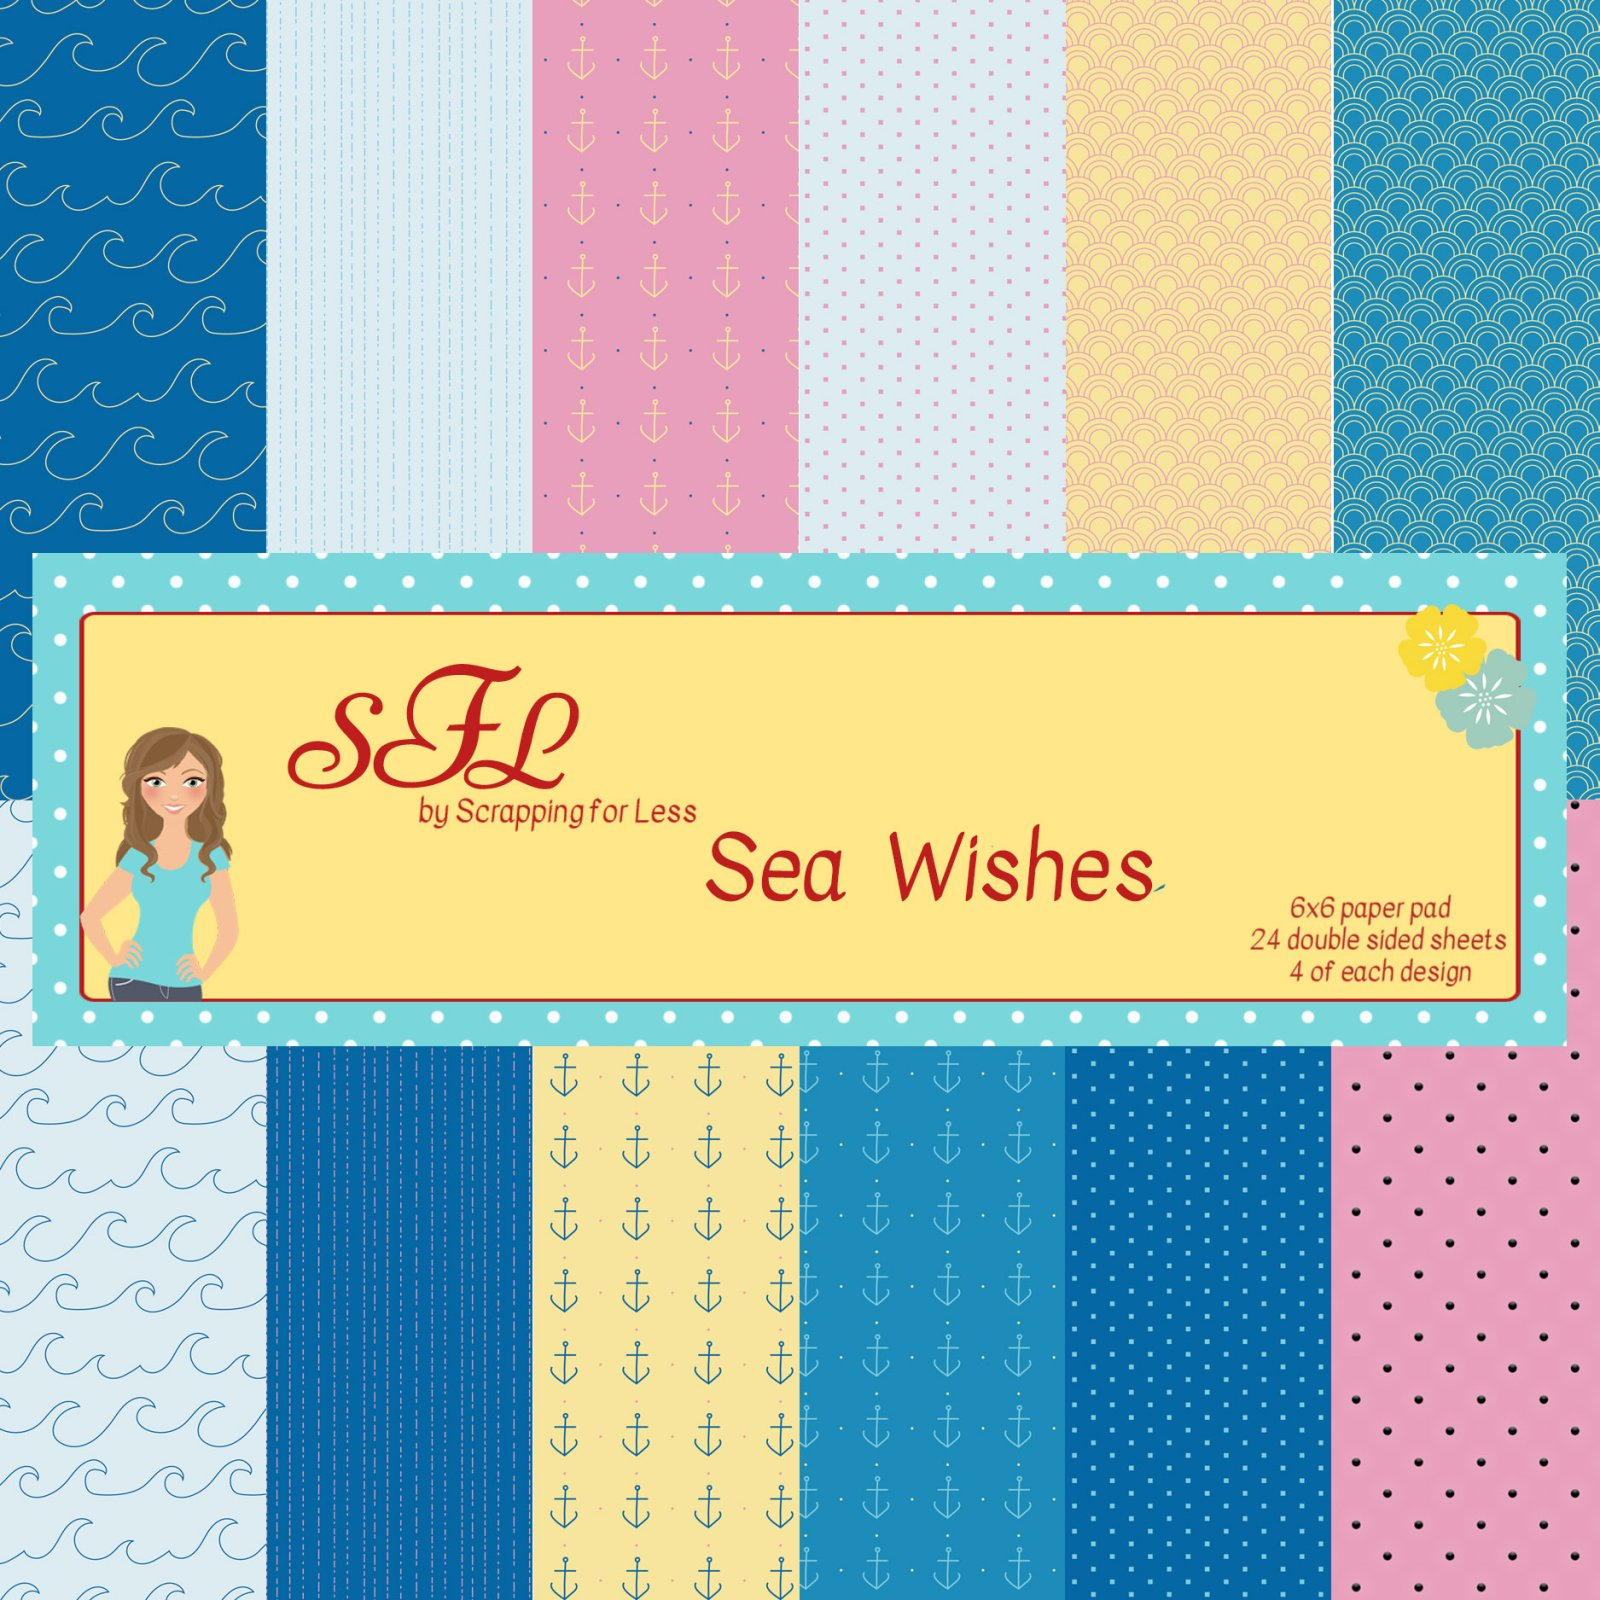 Scrapping for Less Sea Wishes 6x6 Paper Pad